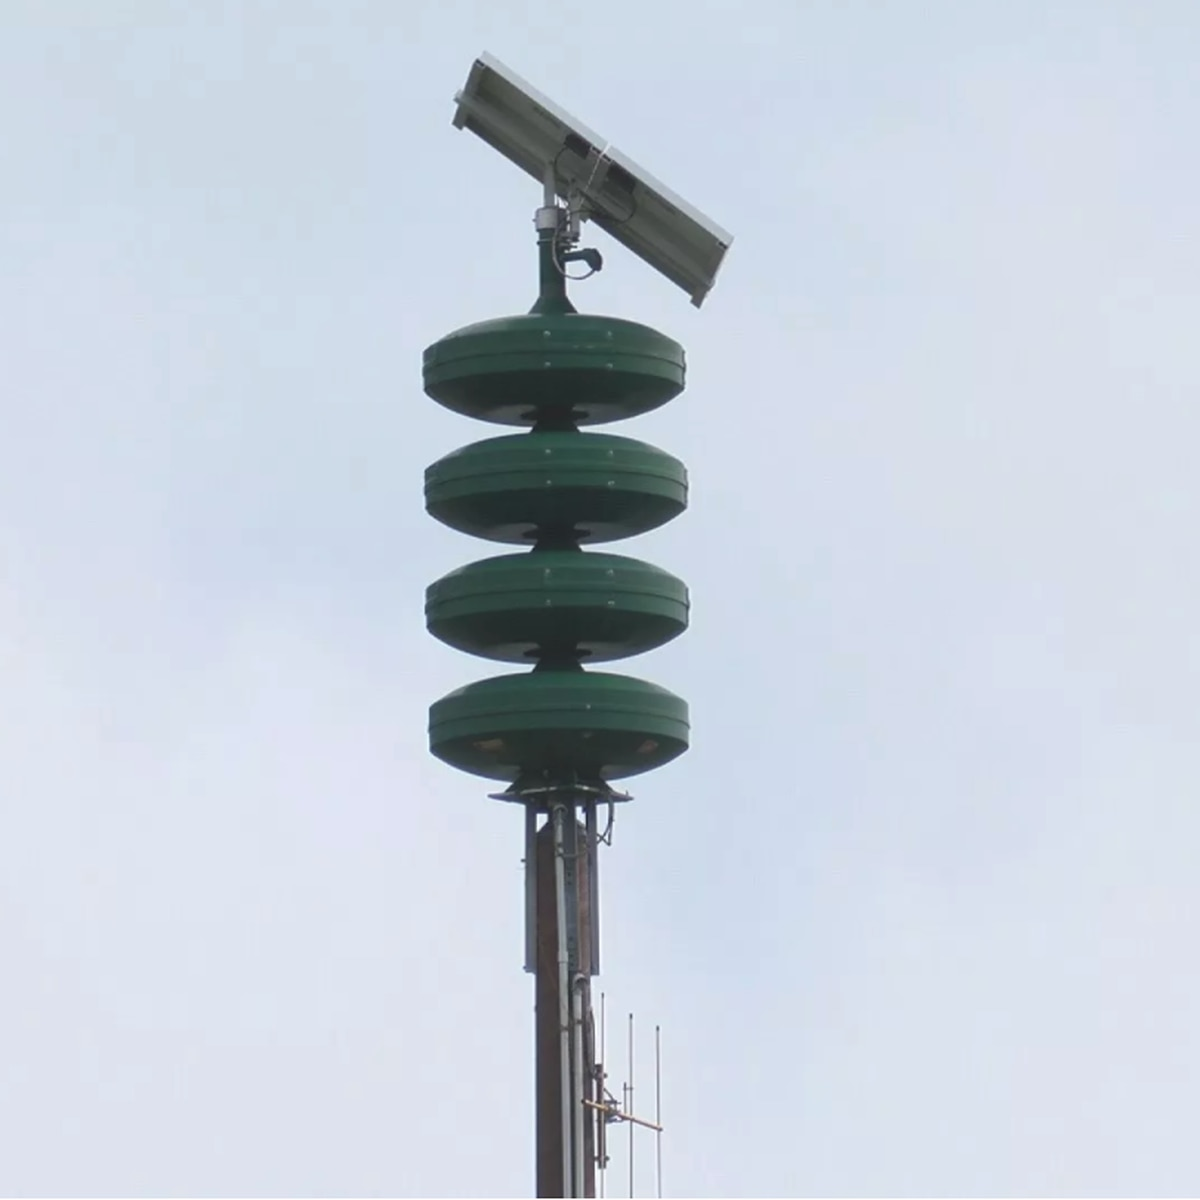 Civil defense siren testing to take place on Maui